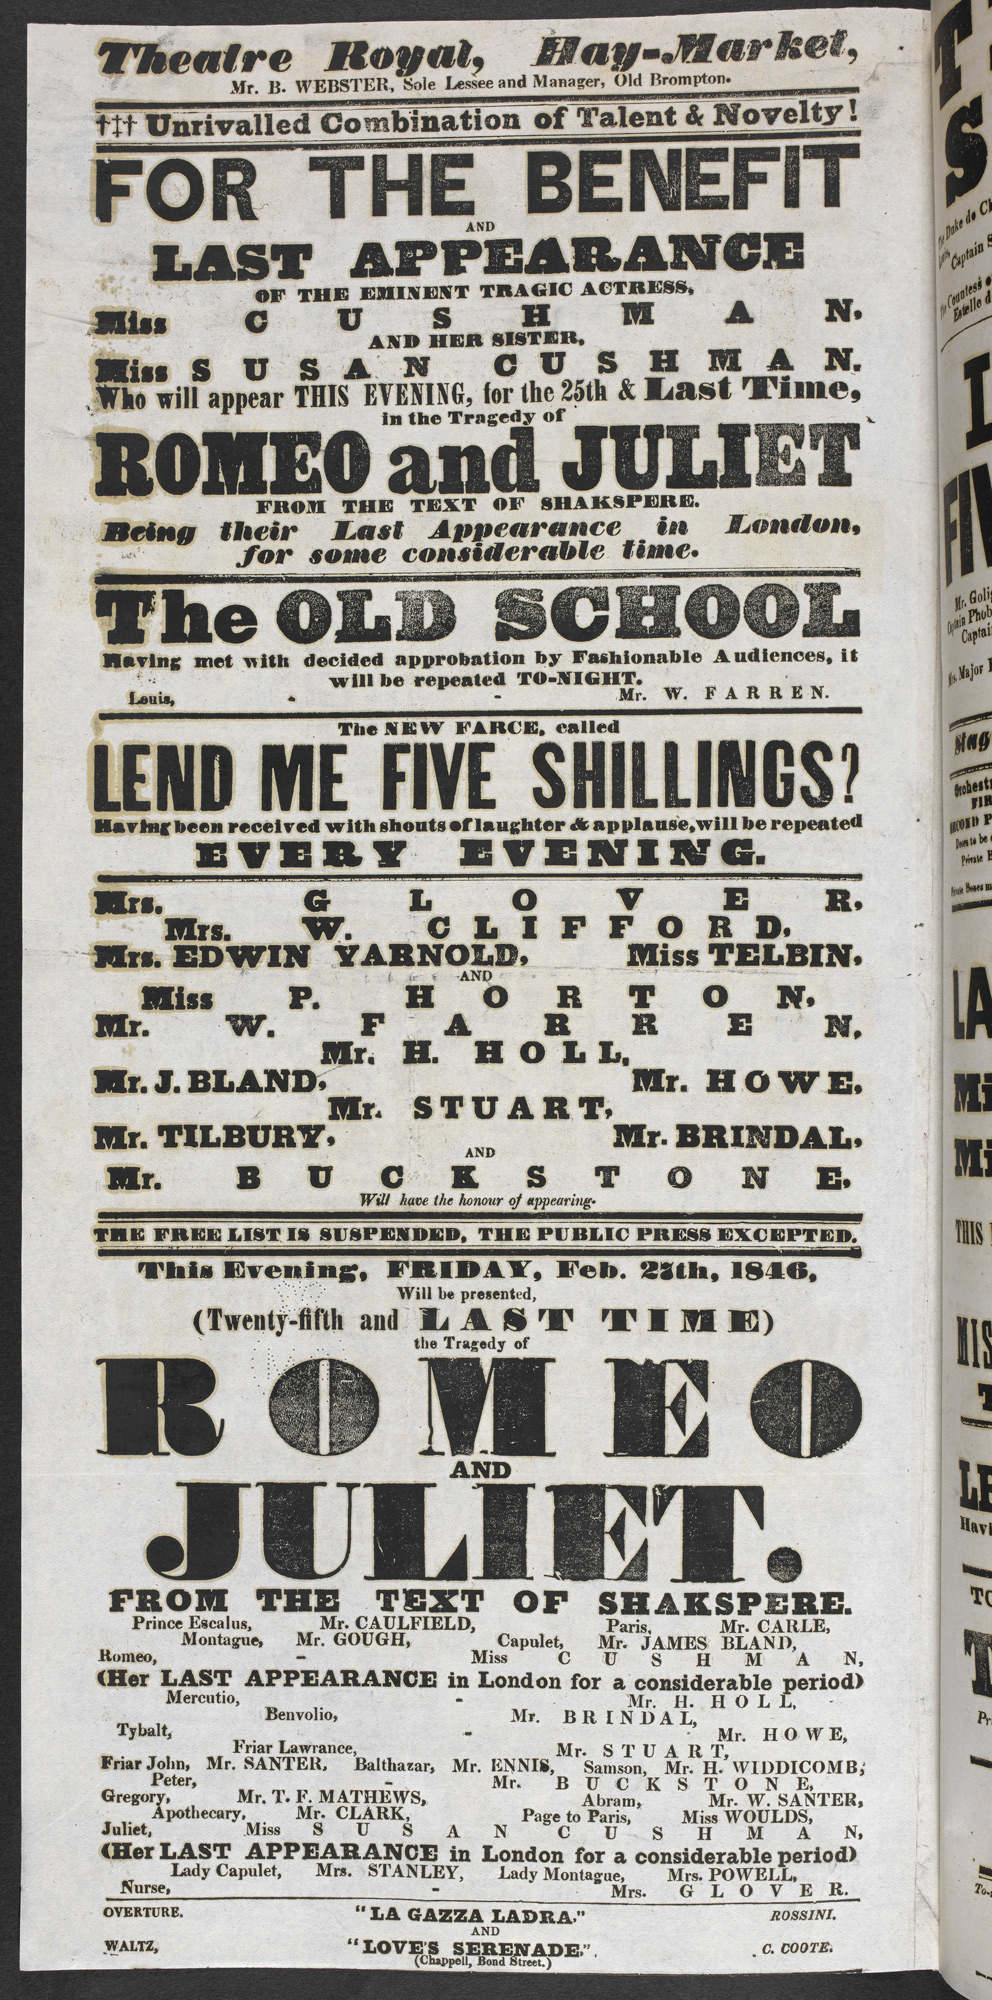 Playbill advertising the Cushman sisters as Romeo and Juliet